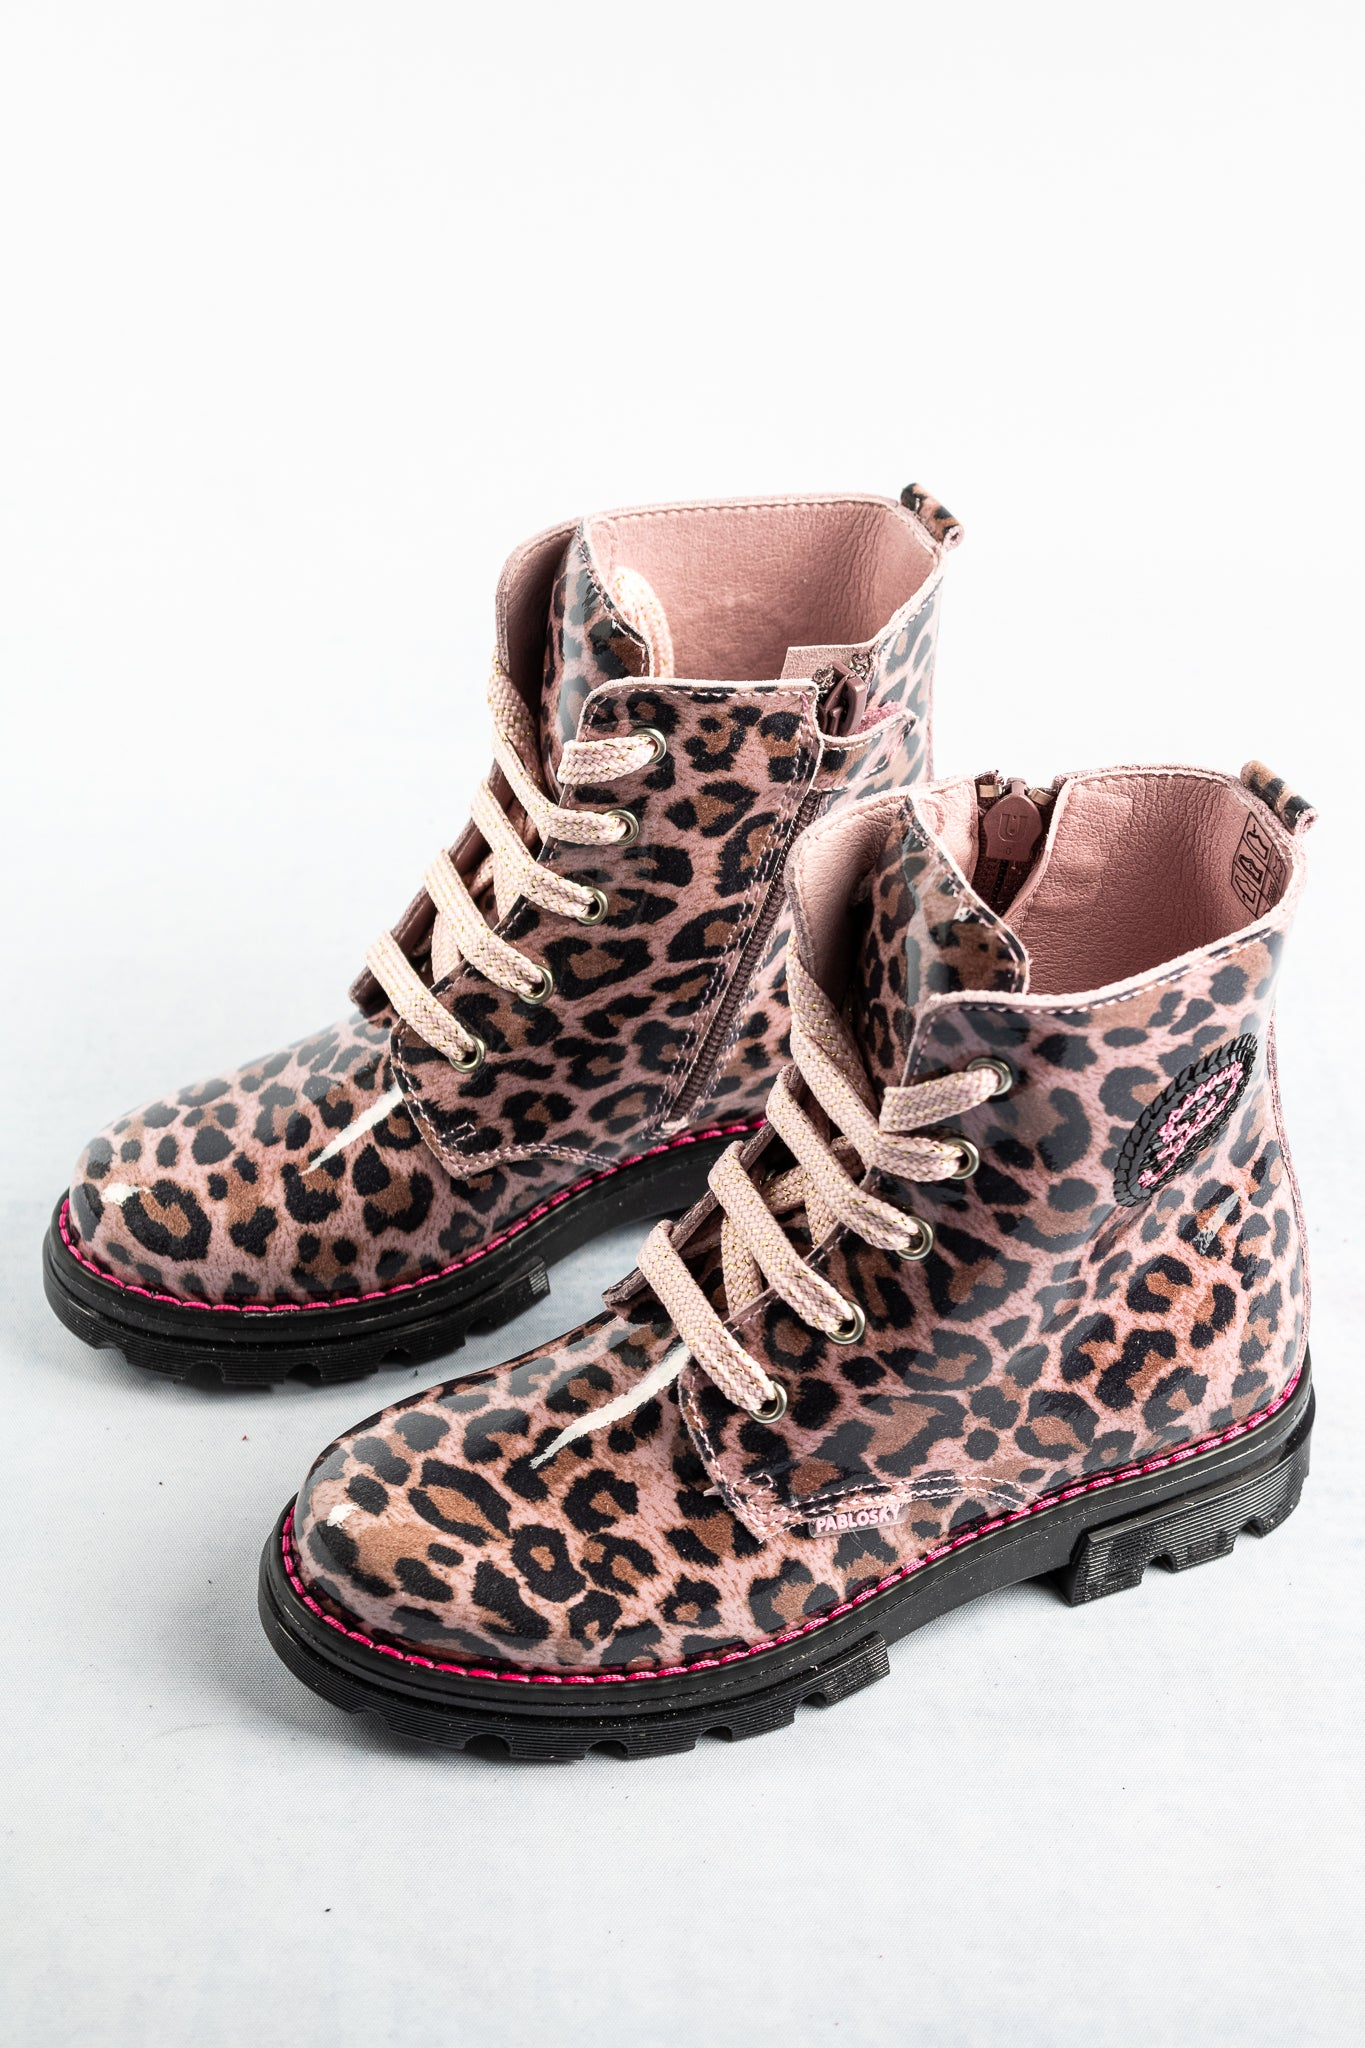 489771 Pablosky Pink Animal Print Boots for sale online ireland